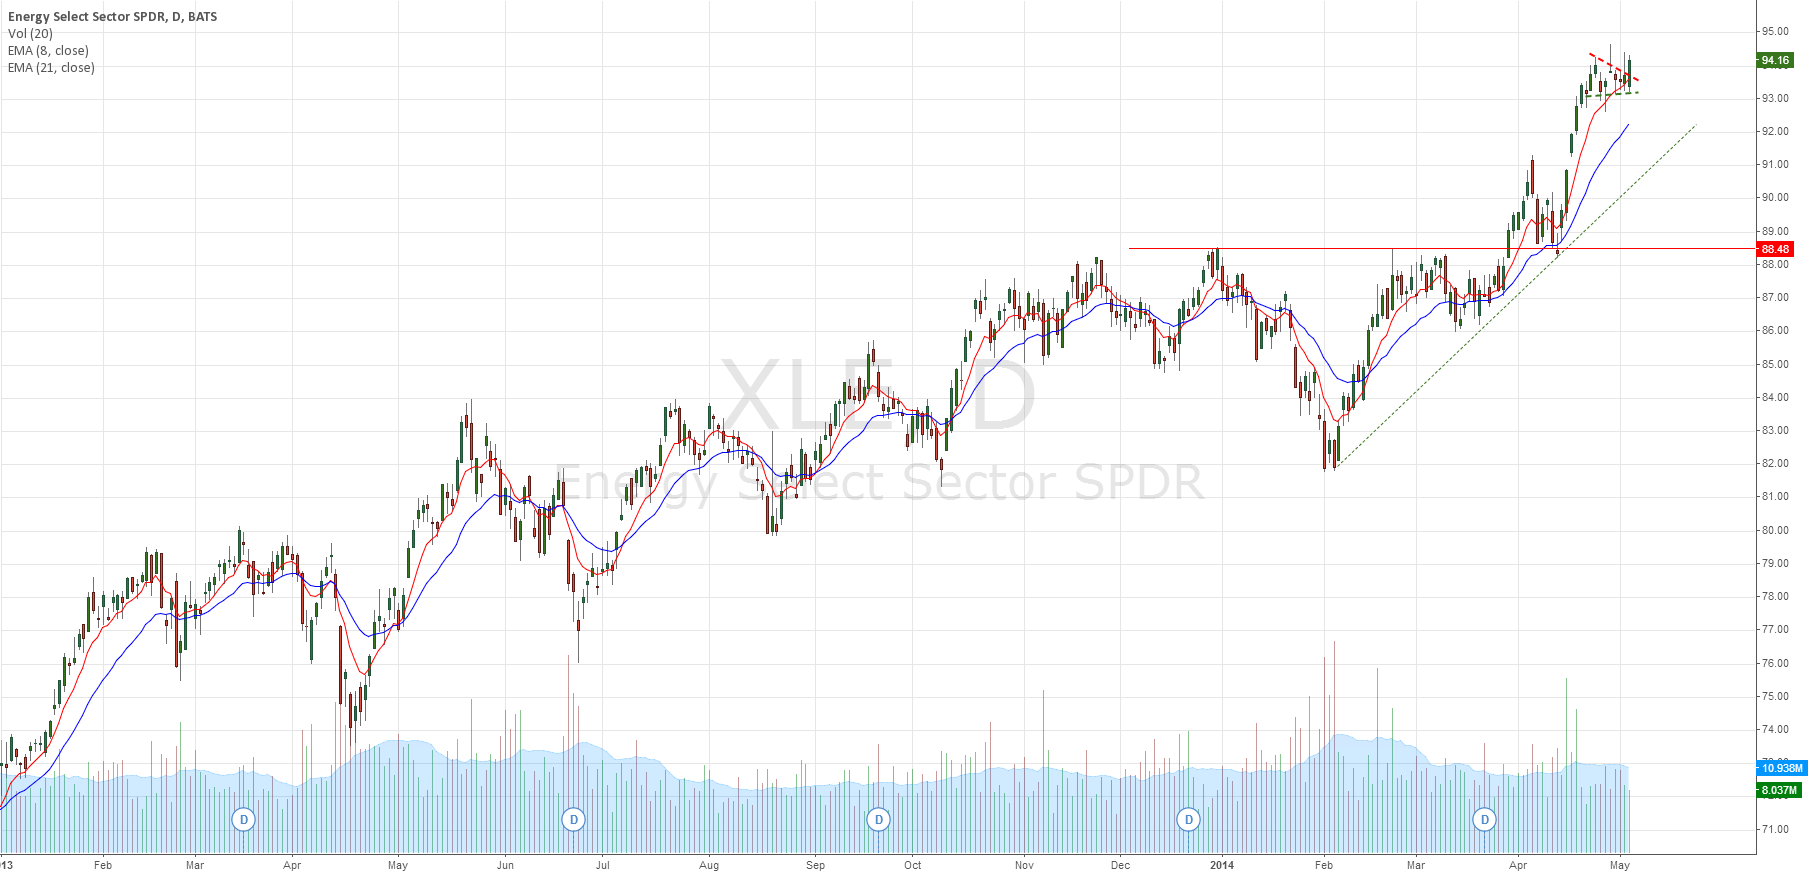 XLE outperformer vs overall market